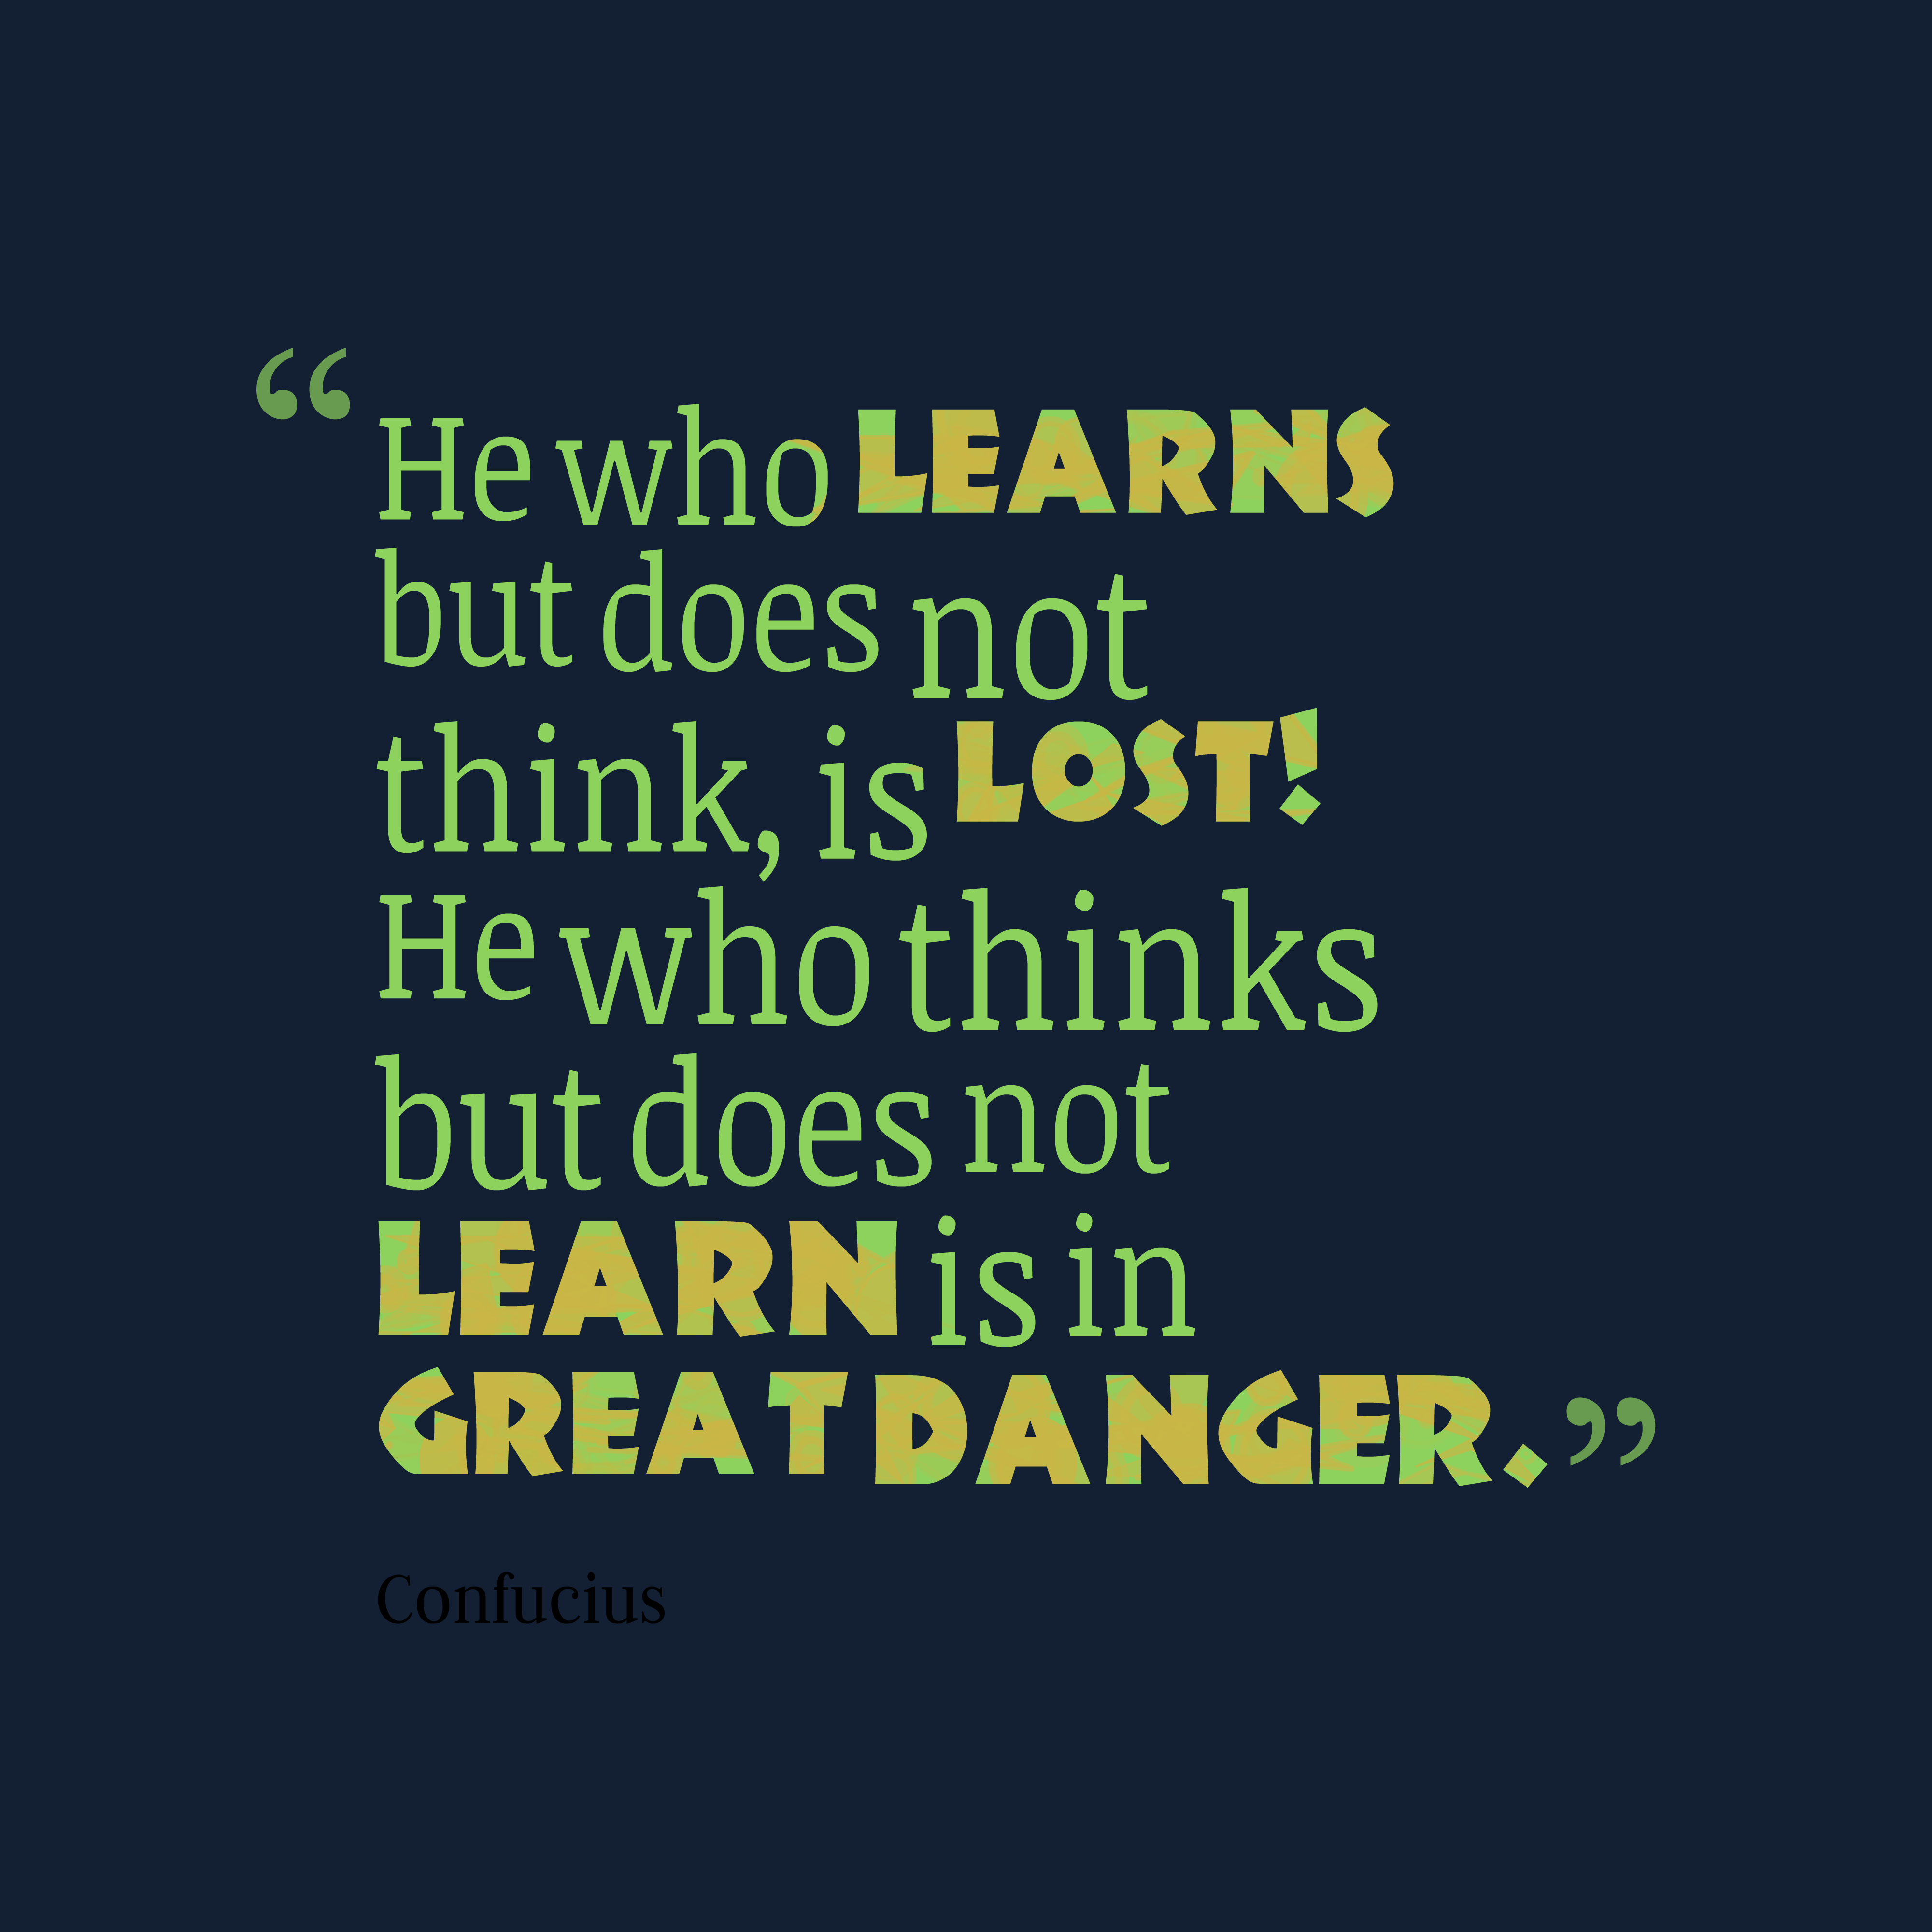 confucius quote about learning